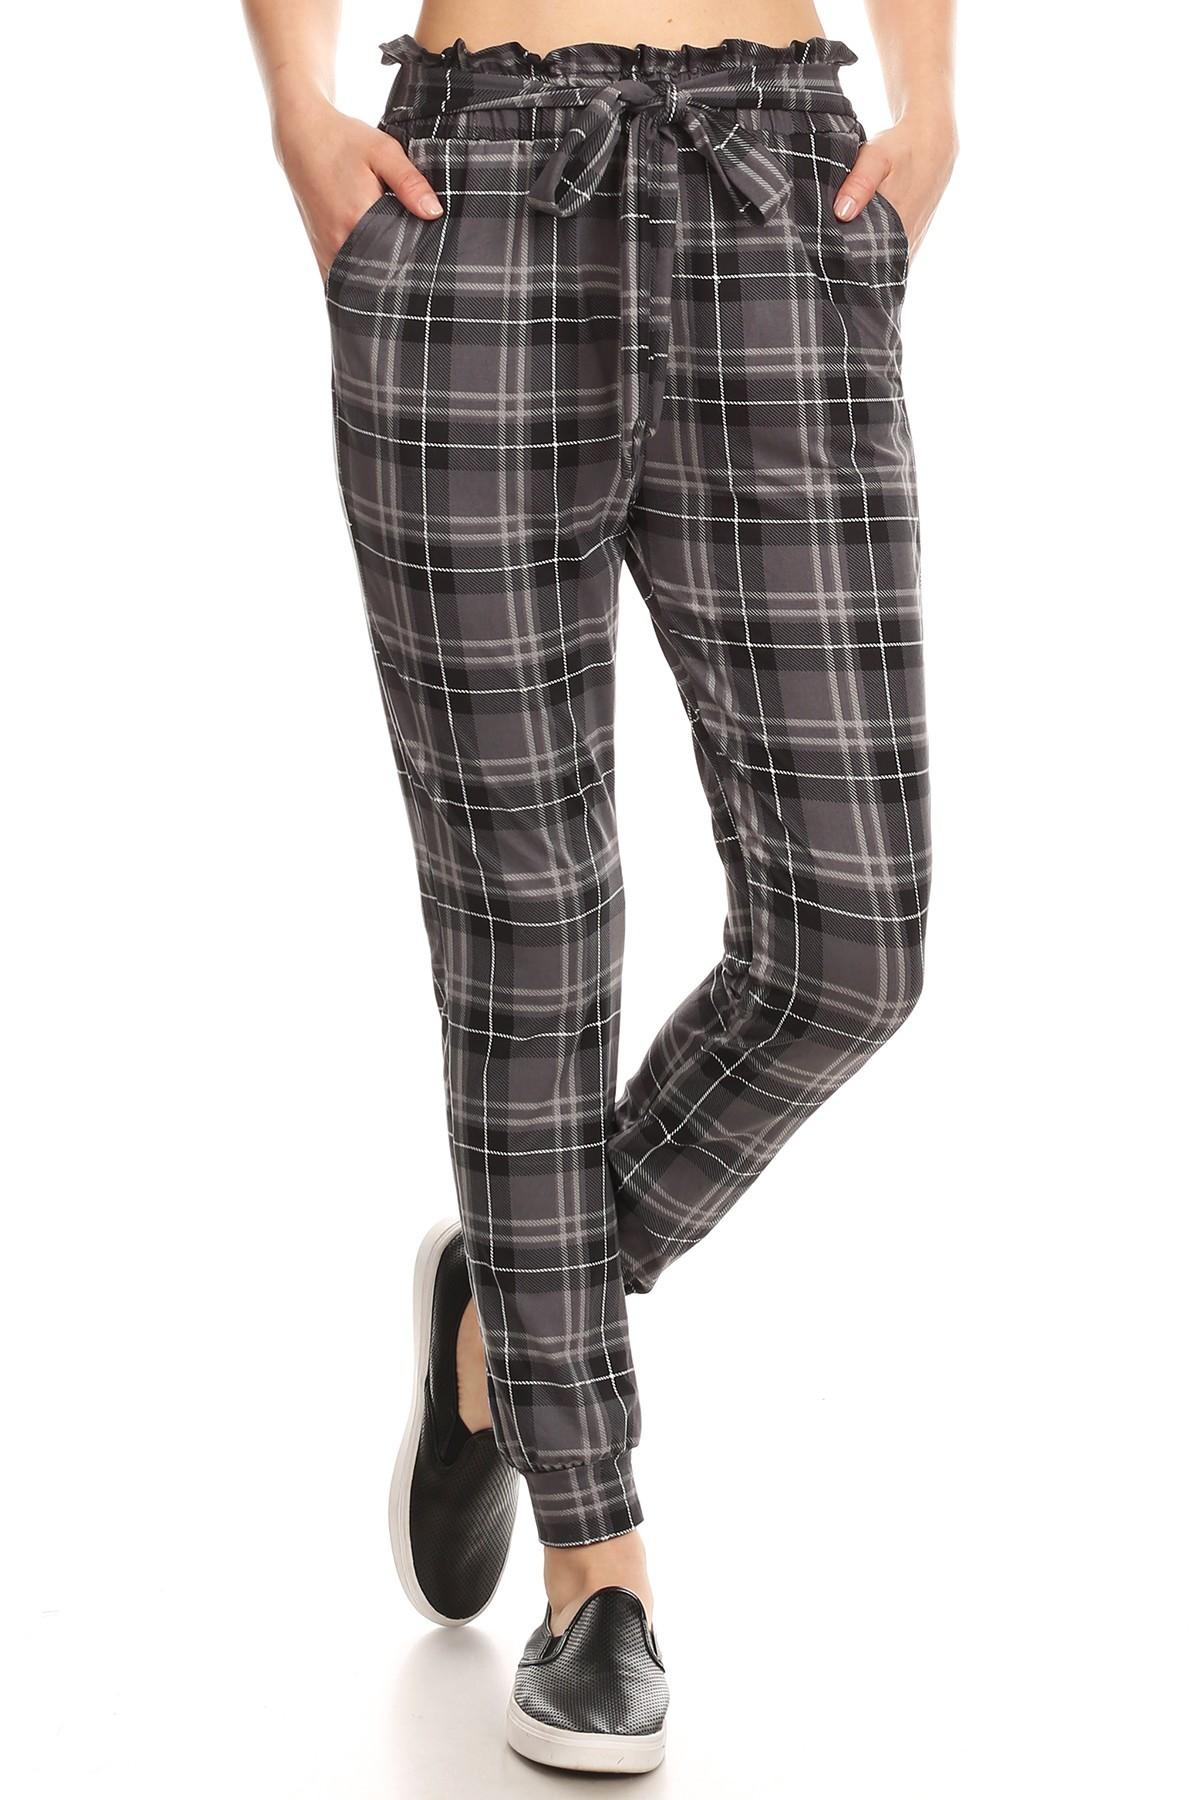 GREY/BLACK/WHITE PLAID PRINT PAPER BAG WAIST JOGGER#8TRK47-03